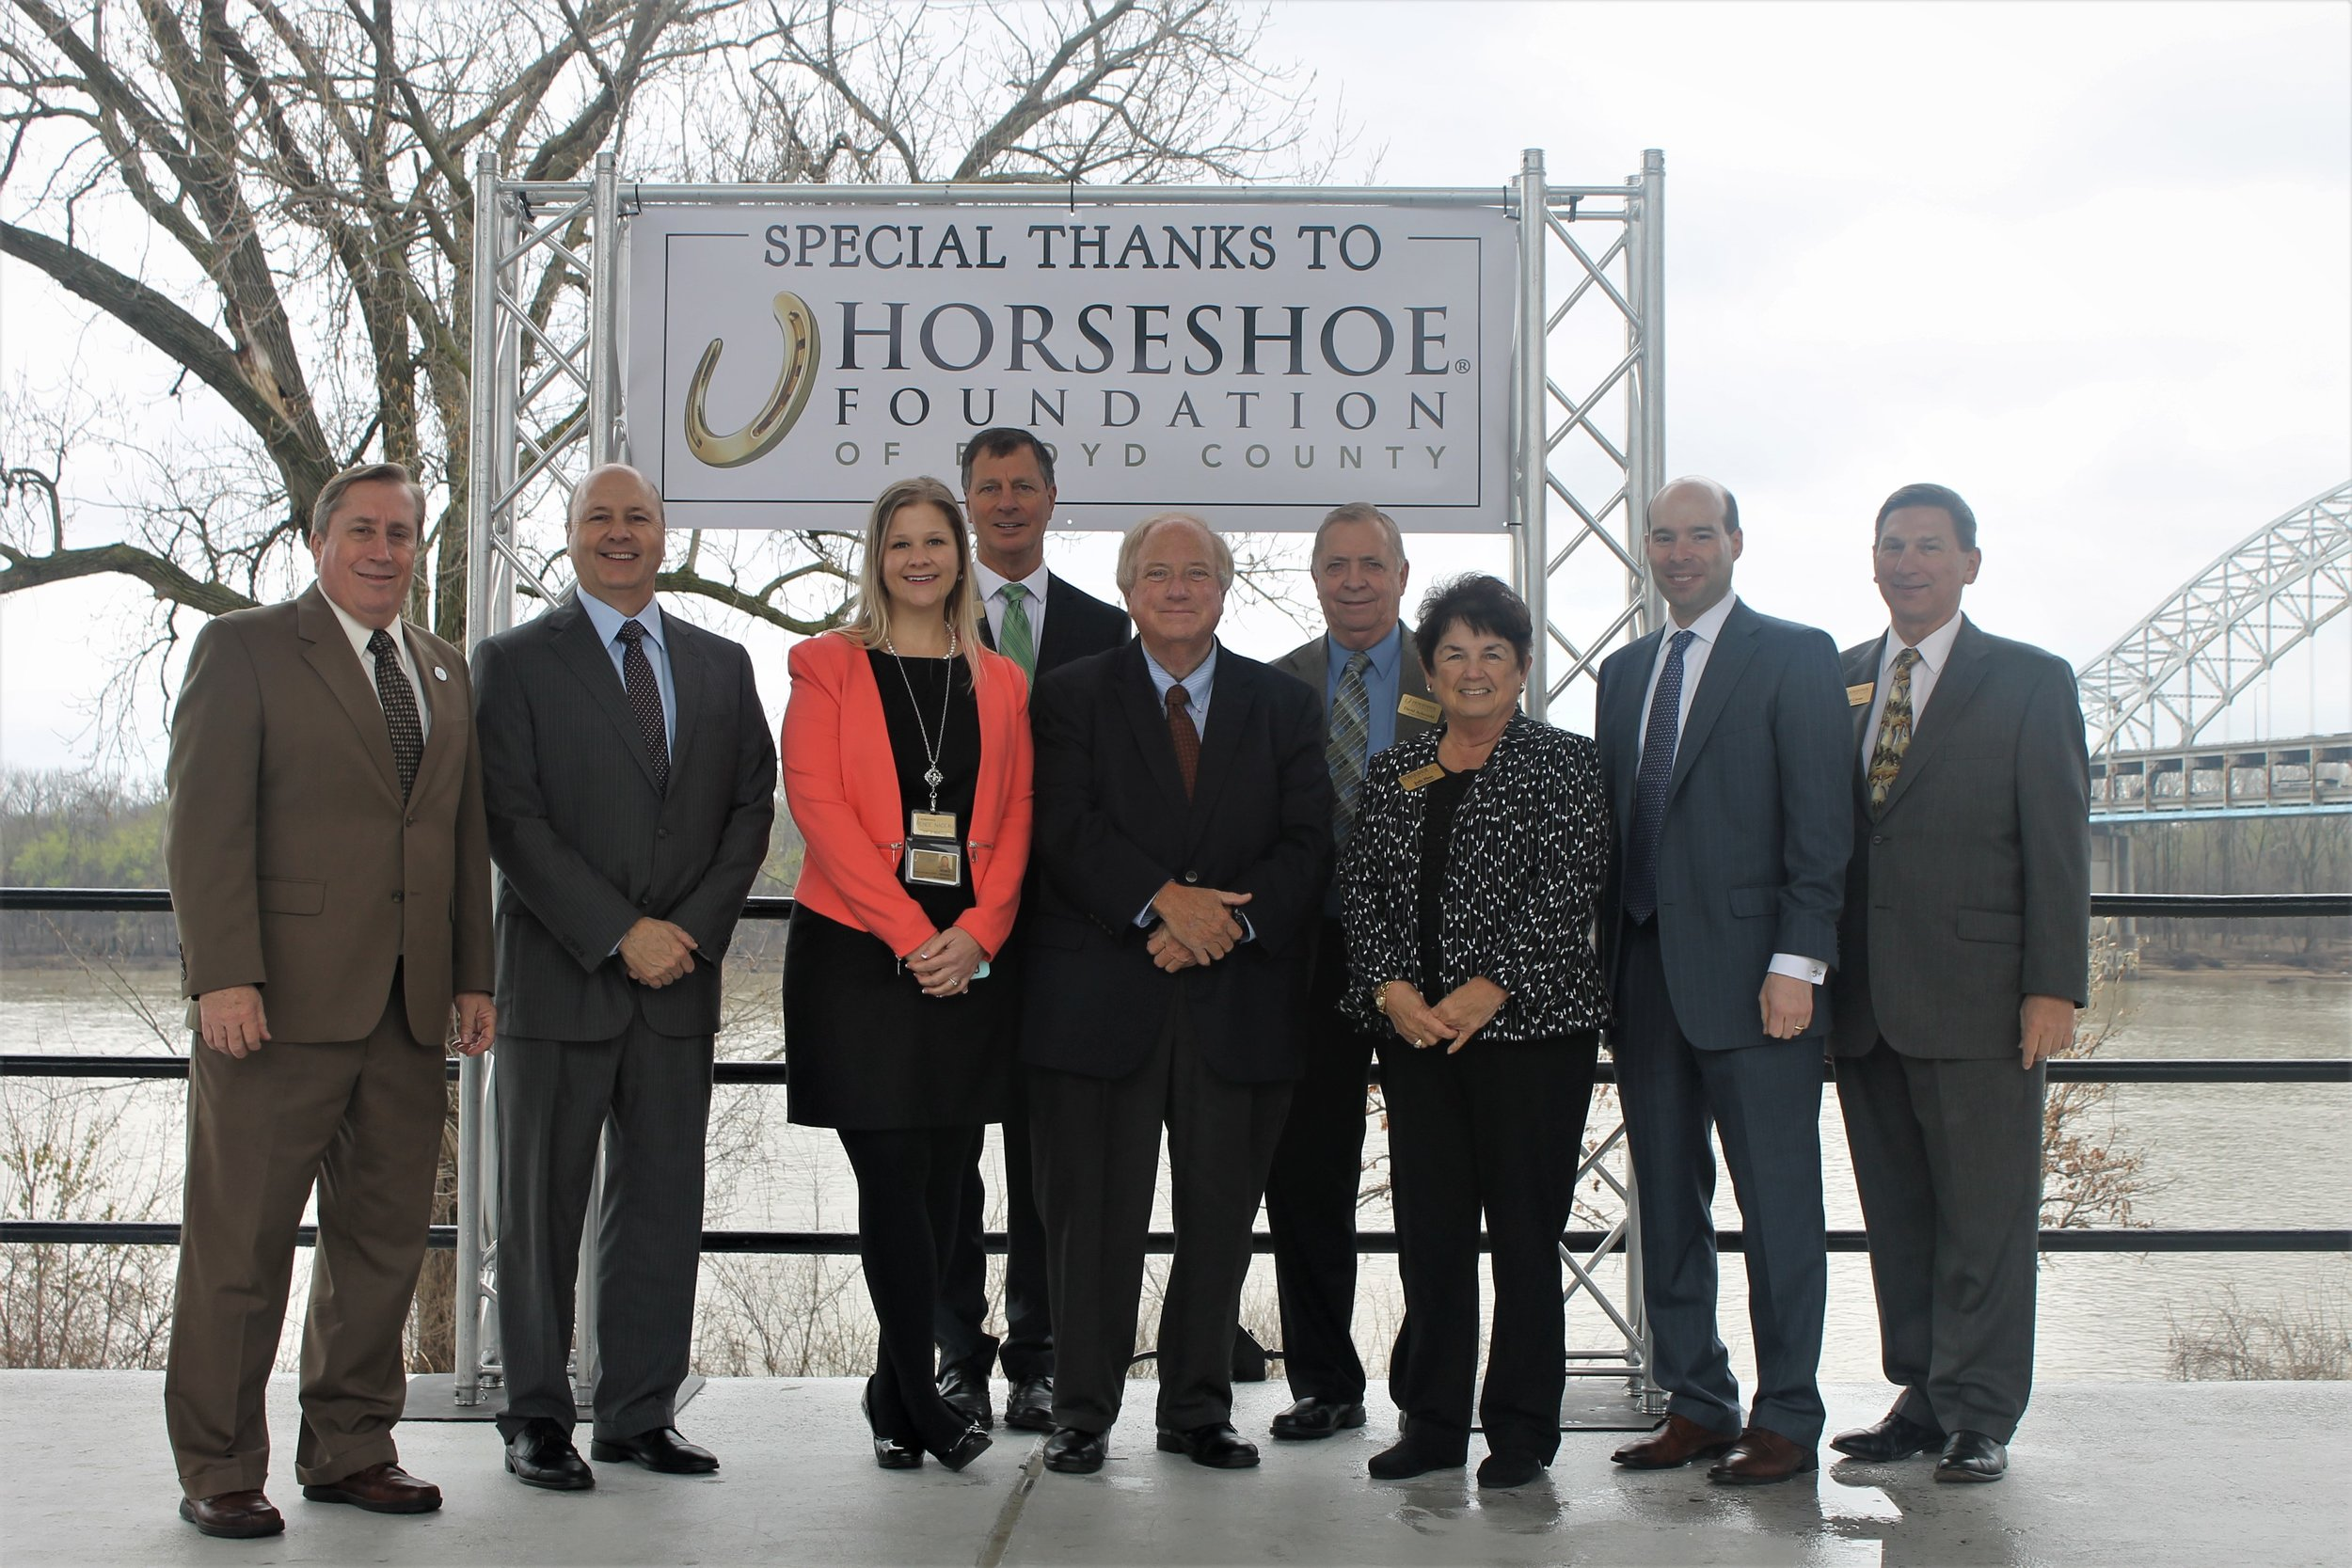 horseshoeannouncement group.jpg